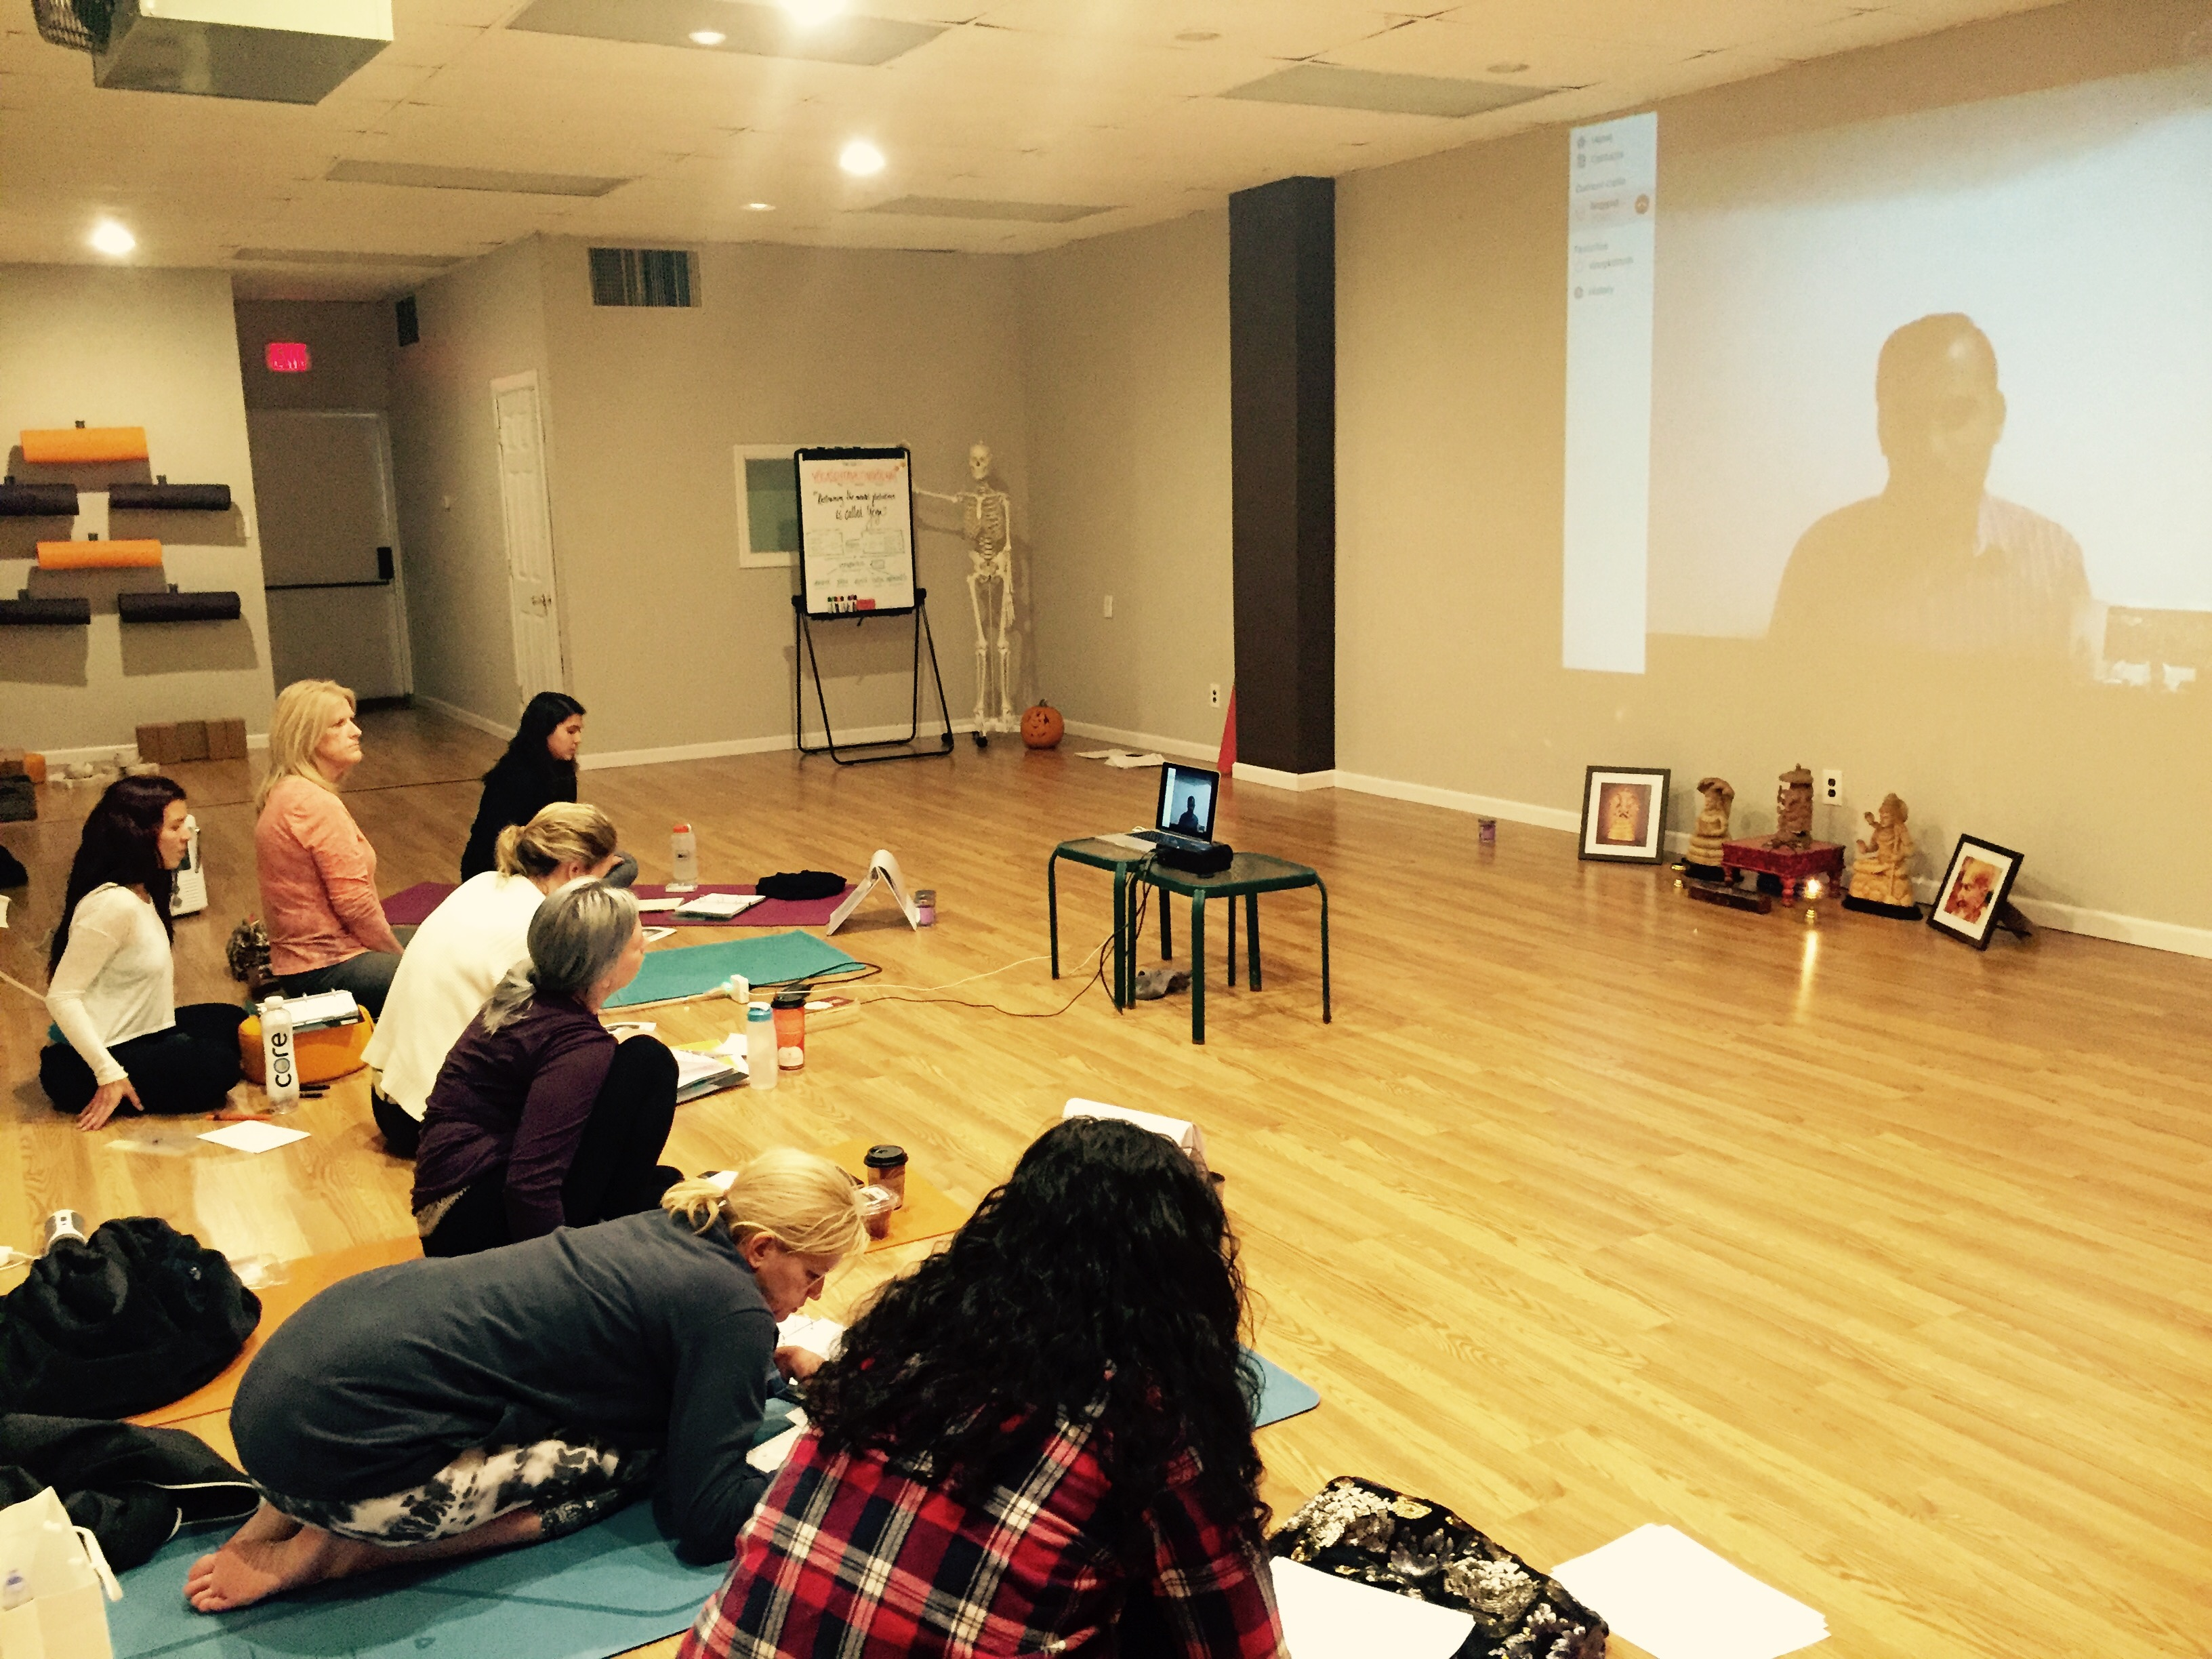 Our Yoga Sutras classes with my Sanskrit teacher Sudheera M.H. in a conference call from Mysore-India. Is amazing to have the opportunity to learn Yoga Sutras from a Sanskrit scholar.